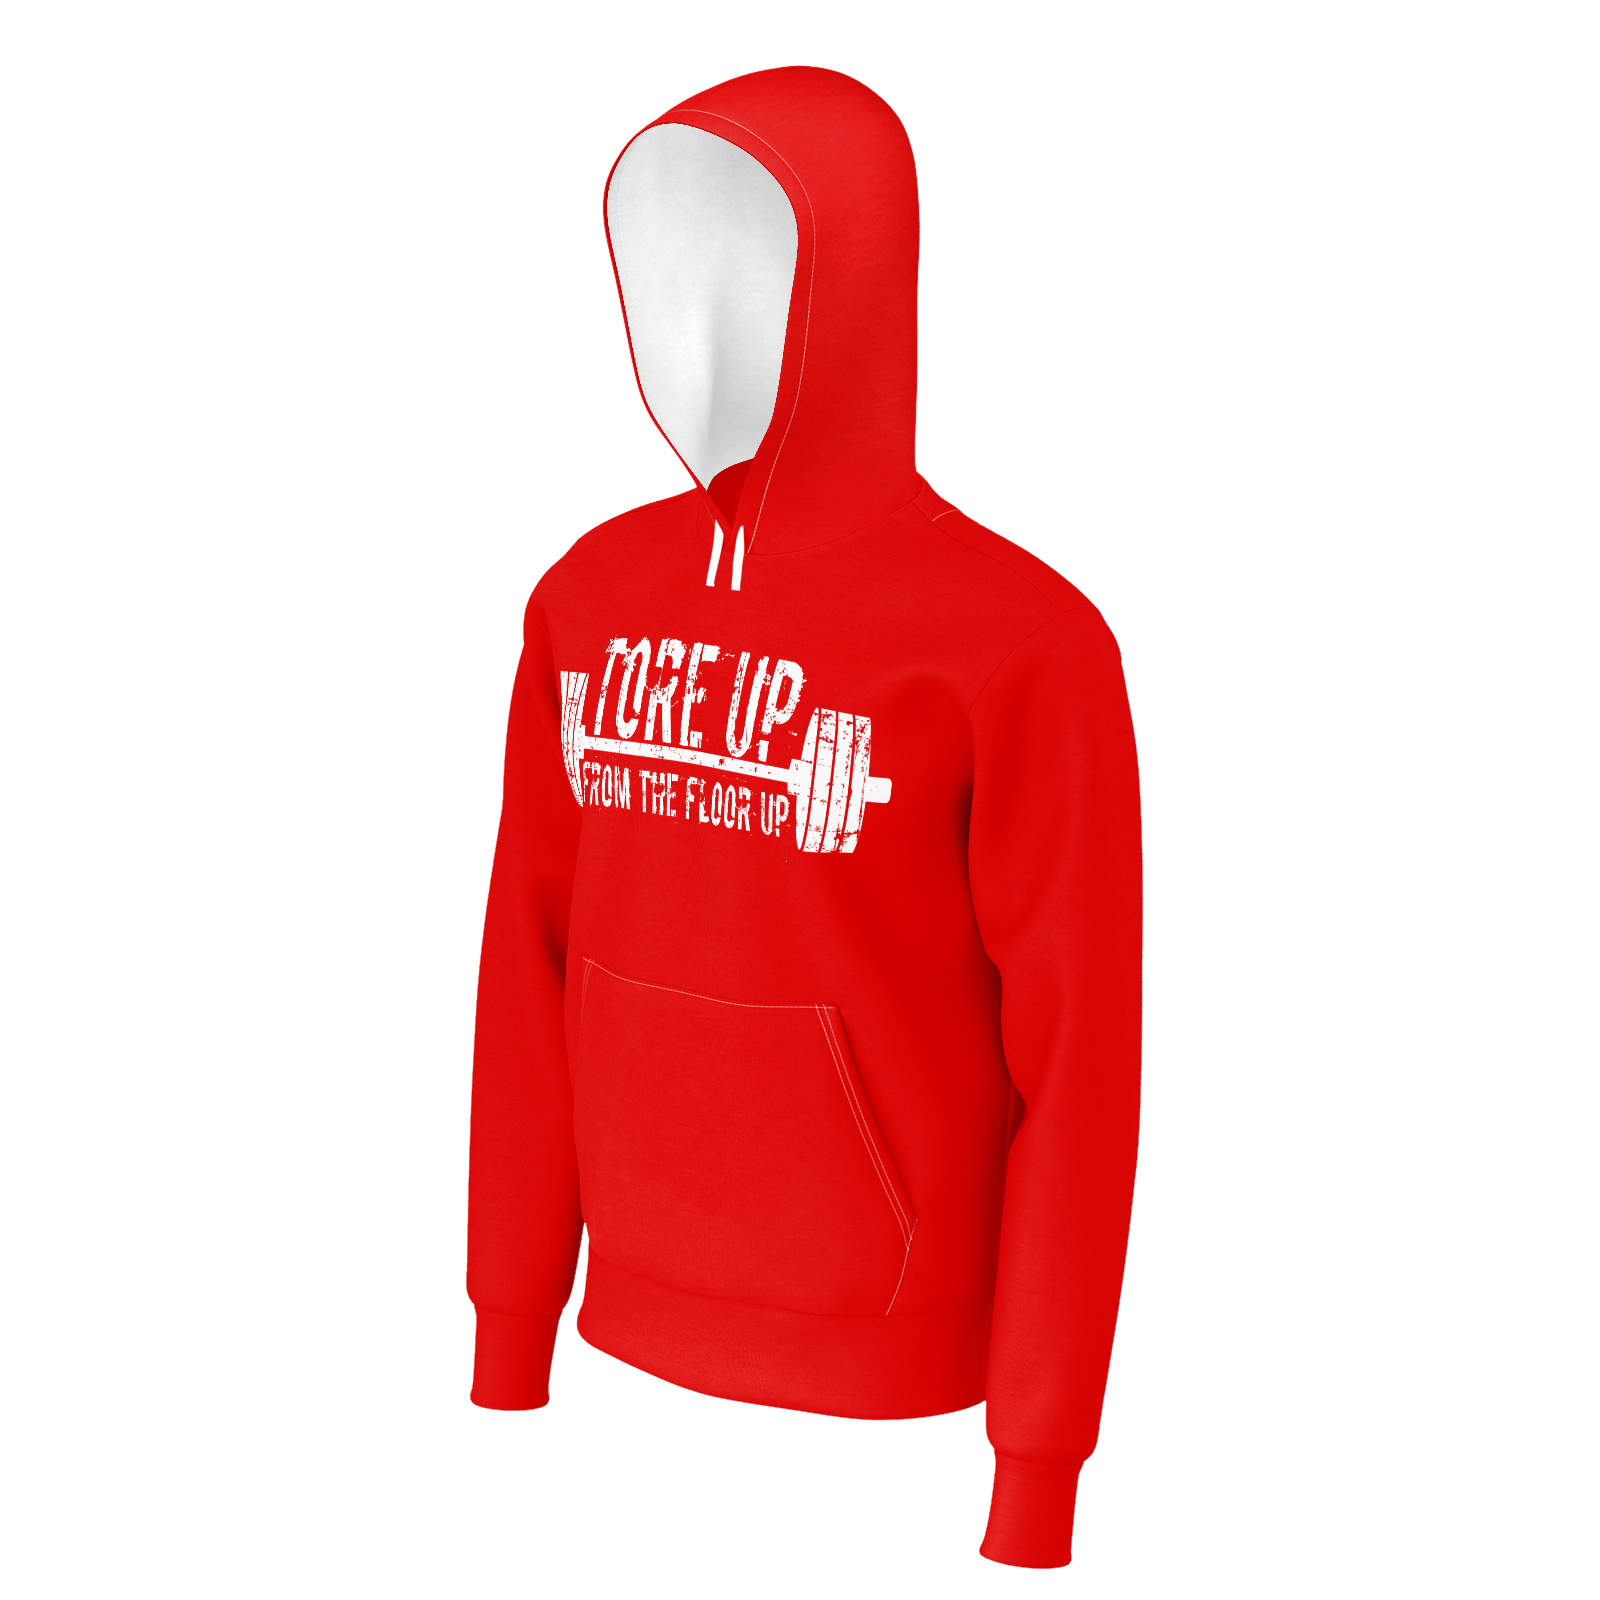 TORE UP RED AND WHITE HOODIE